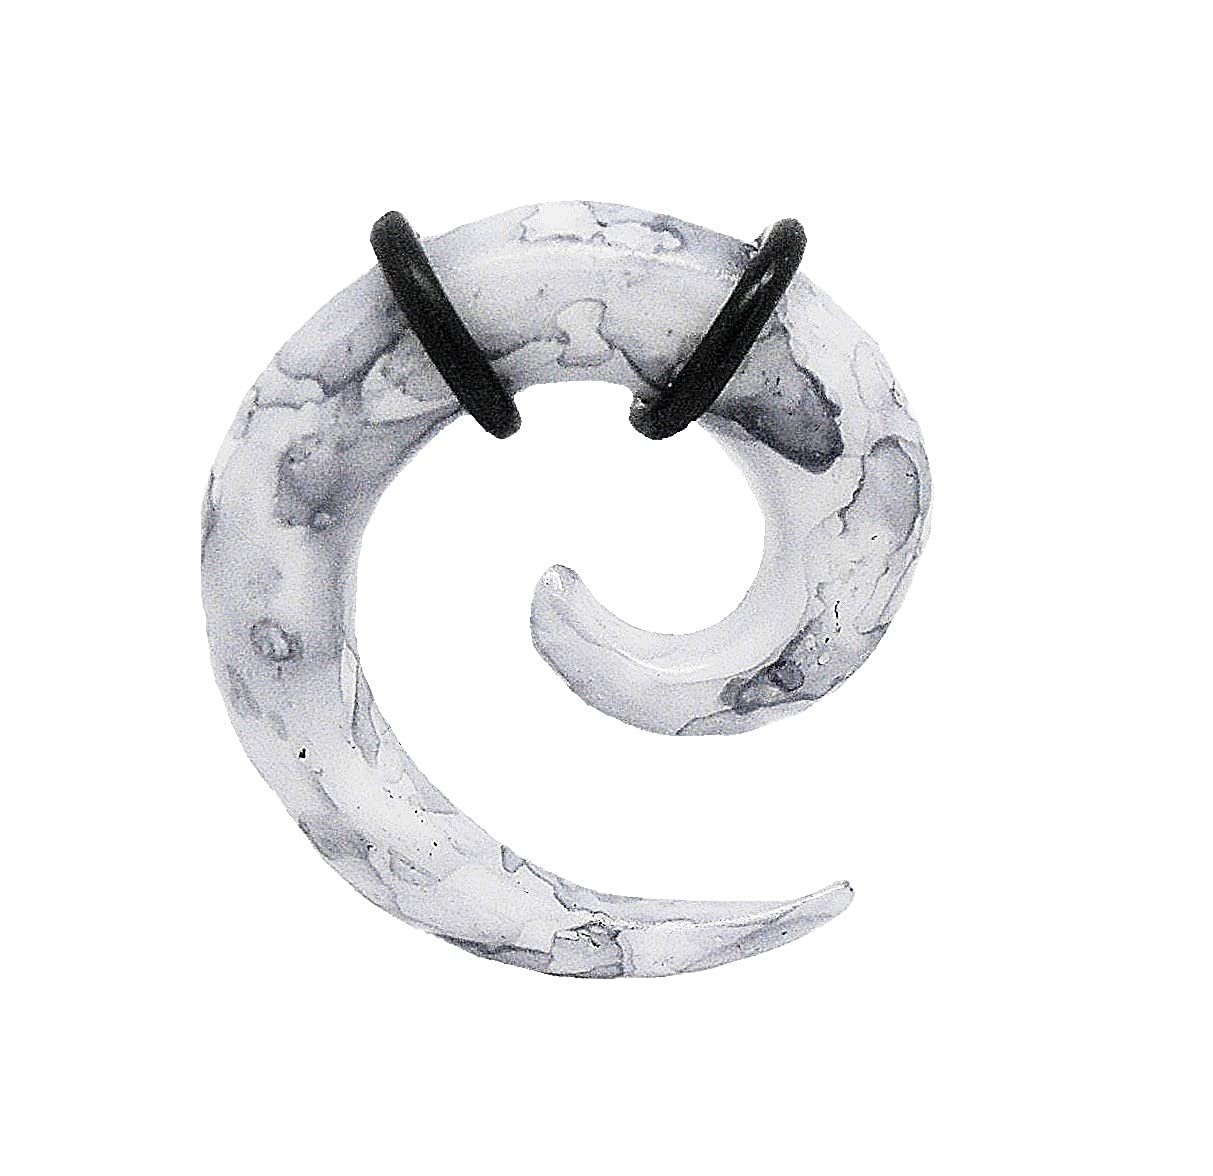 Pair of 8ga 3mm, 6ga 4mm, 4ga 5mm, 2ga 6mm, 0ga 8mm and 00ga 10mm Acrylic Earring Ear Plug Ring Spiral Tapers Curved Claw Expander Grey Marble Stripe Painted Korea